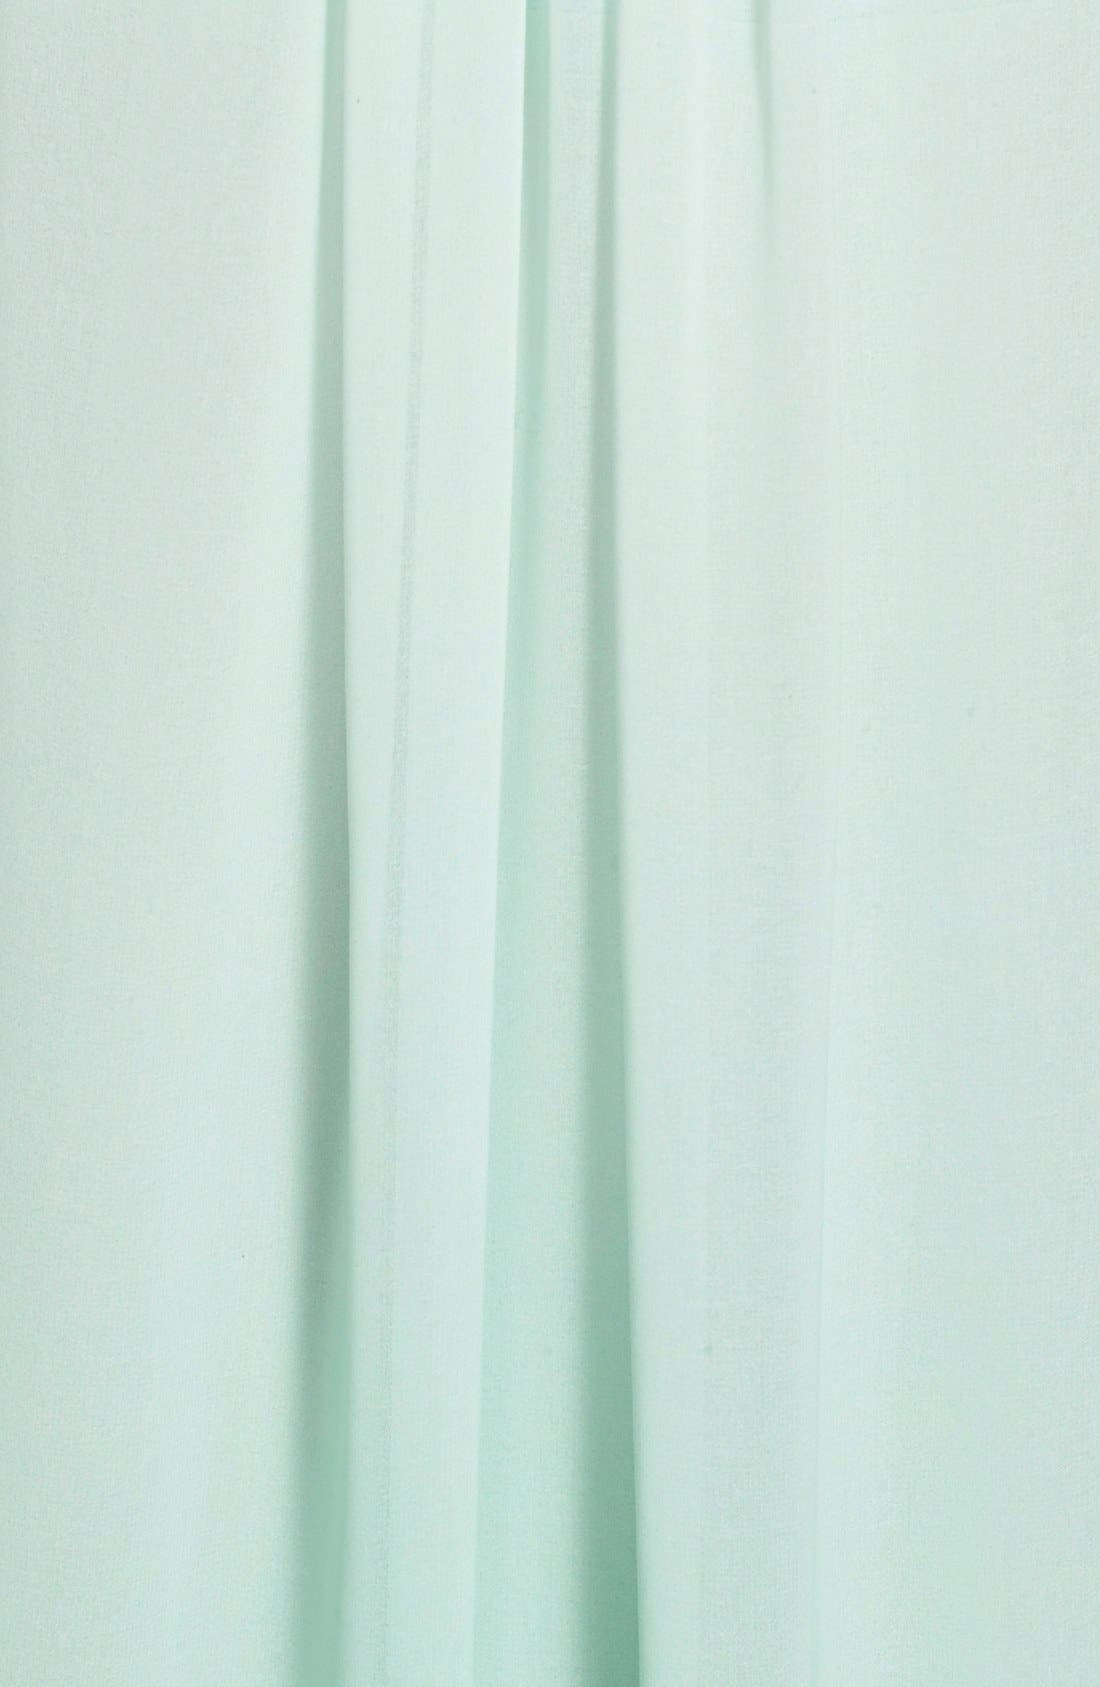 ERIN ERIN FETHERSTON,                             'Daria' Ombré Chiffon A-Line Gown,                             Alternate thumbnail 3, color,                             303